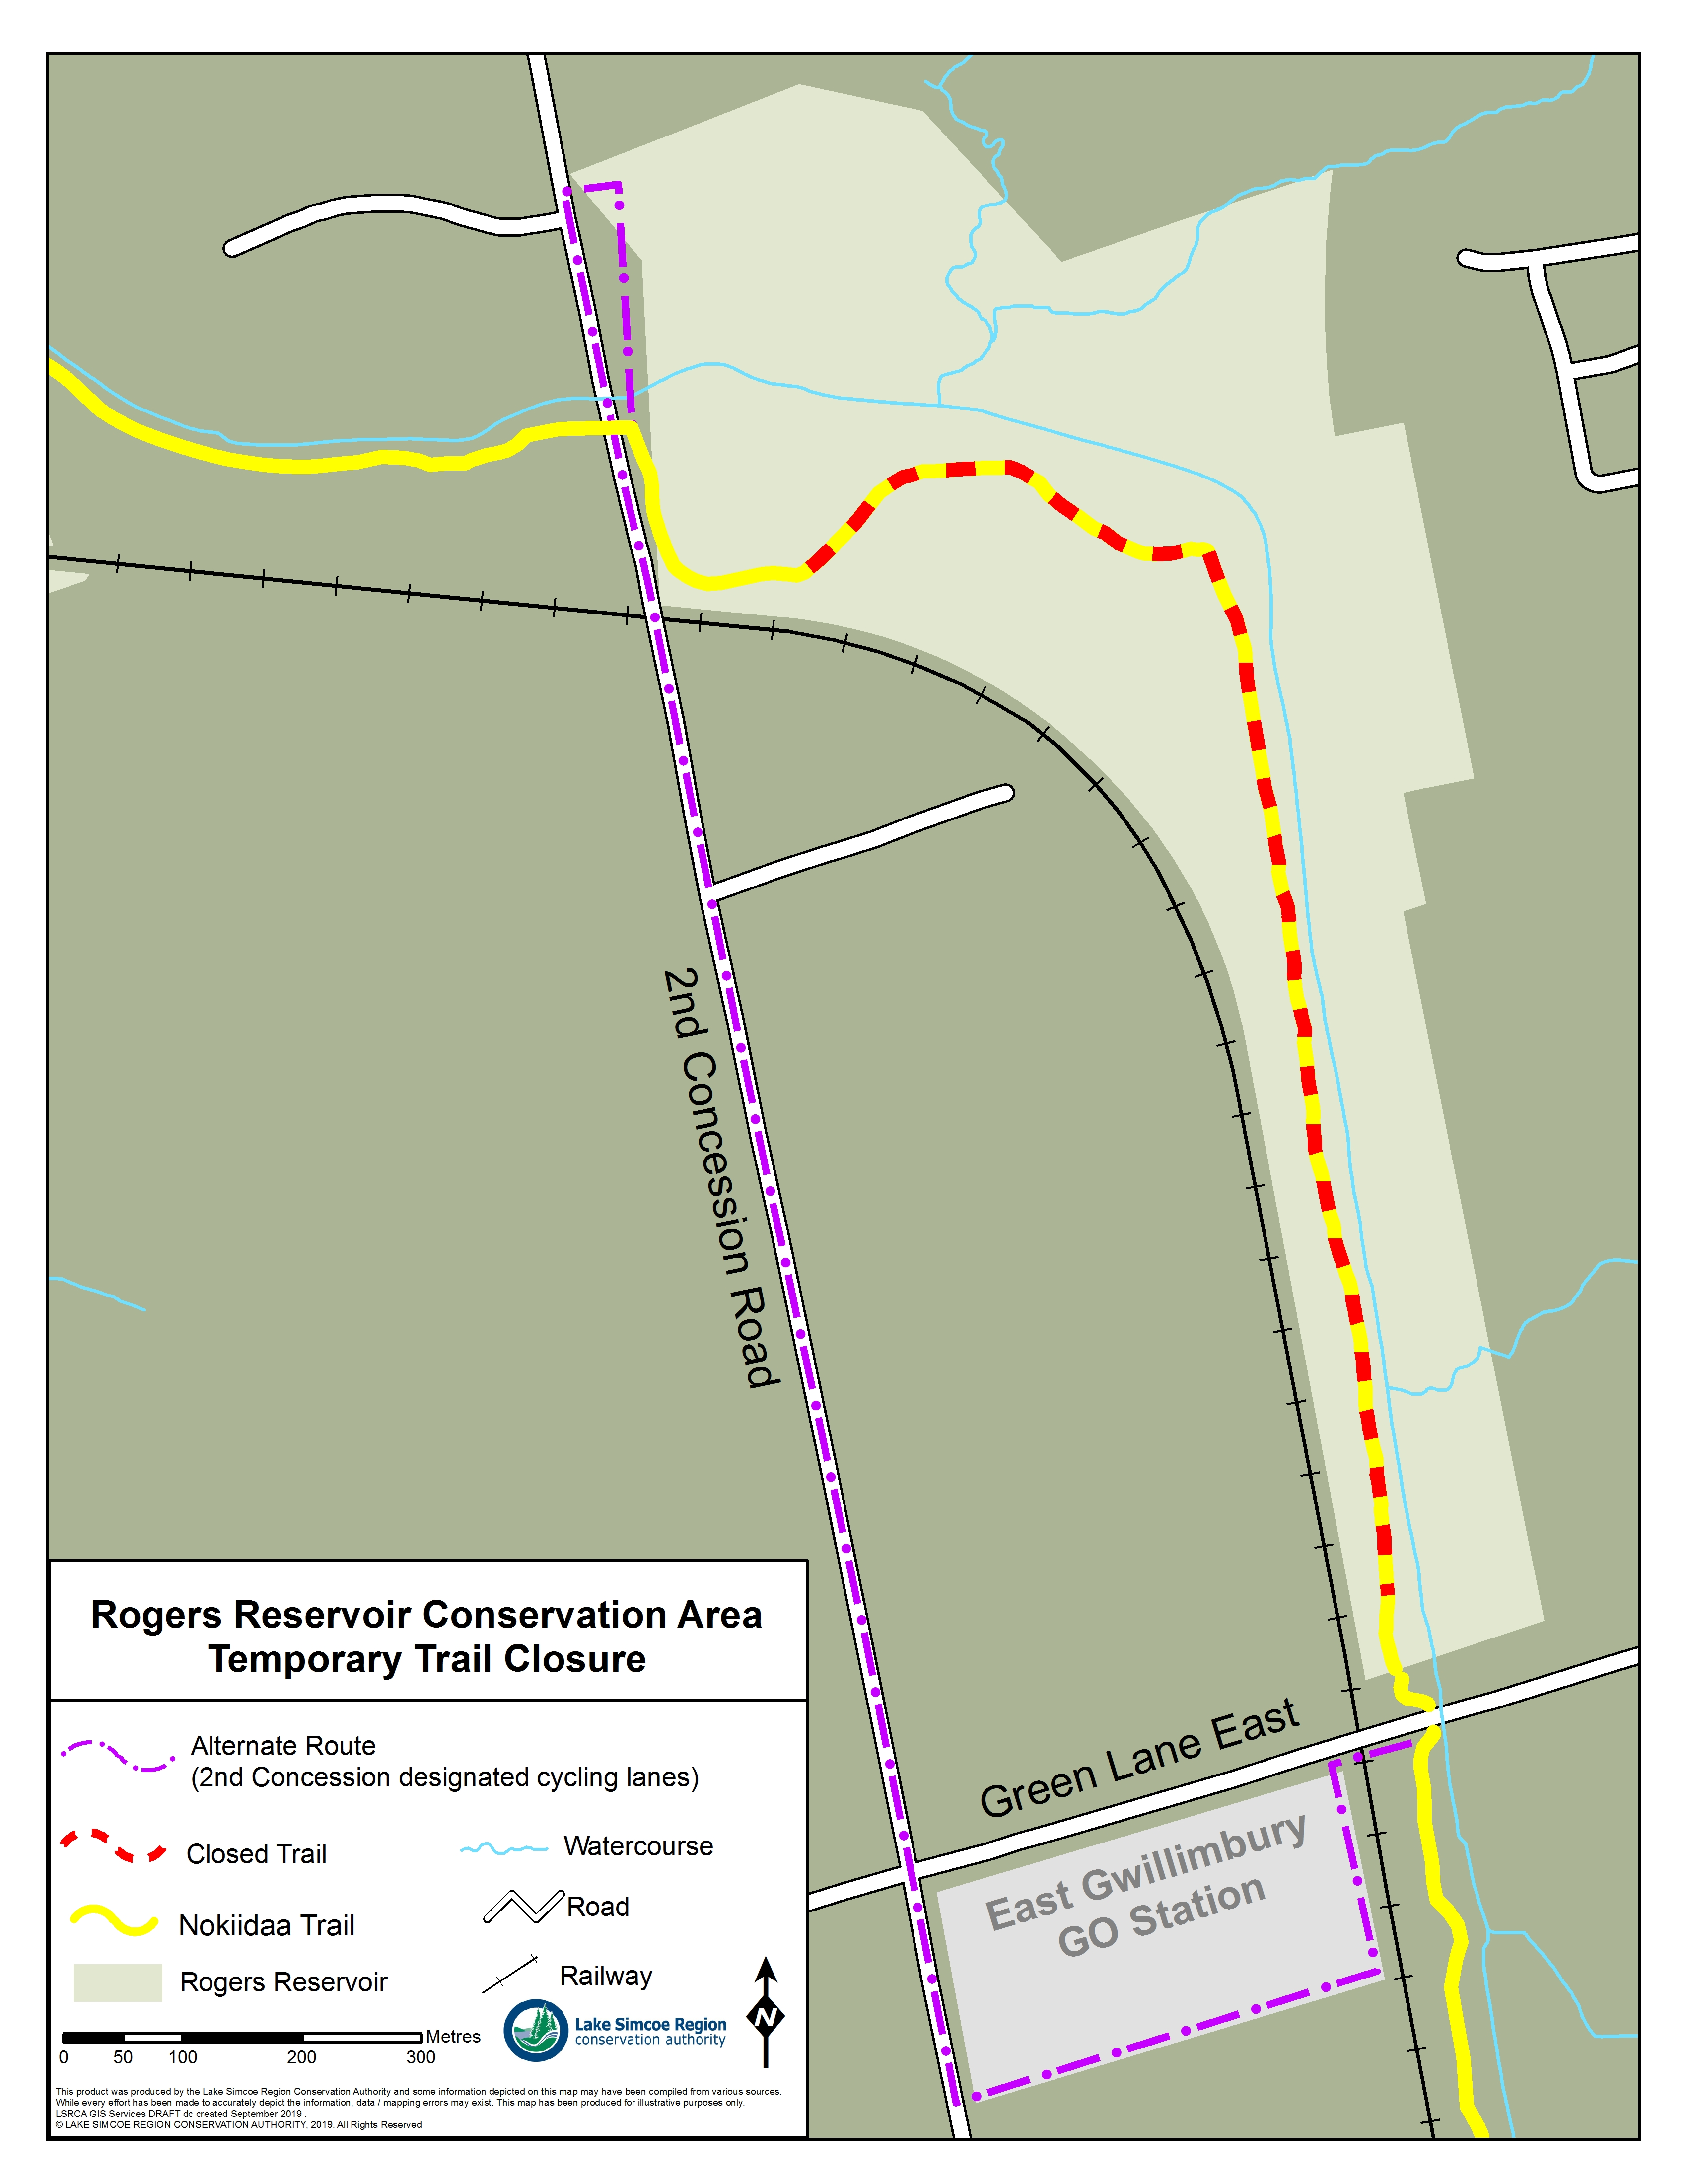 A map showing the closure of the Nokiidaa trail, east of 2nd Concession, up until noth of Green Lane.